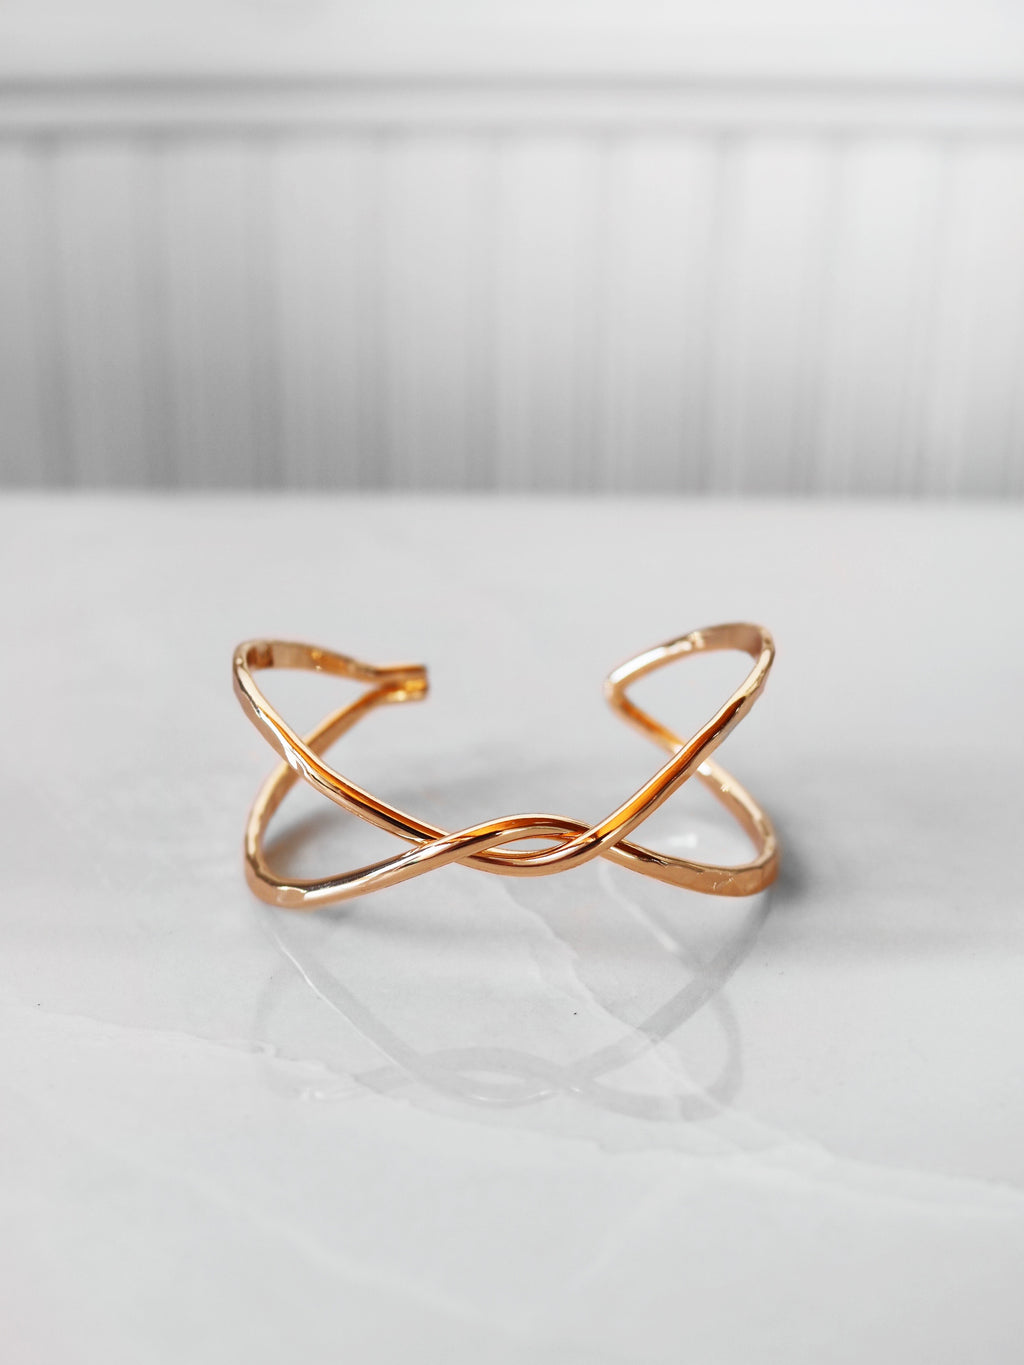 Twisty Turn Cuff